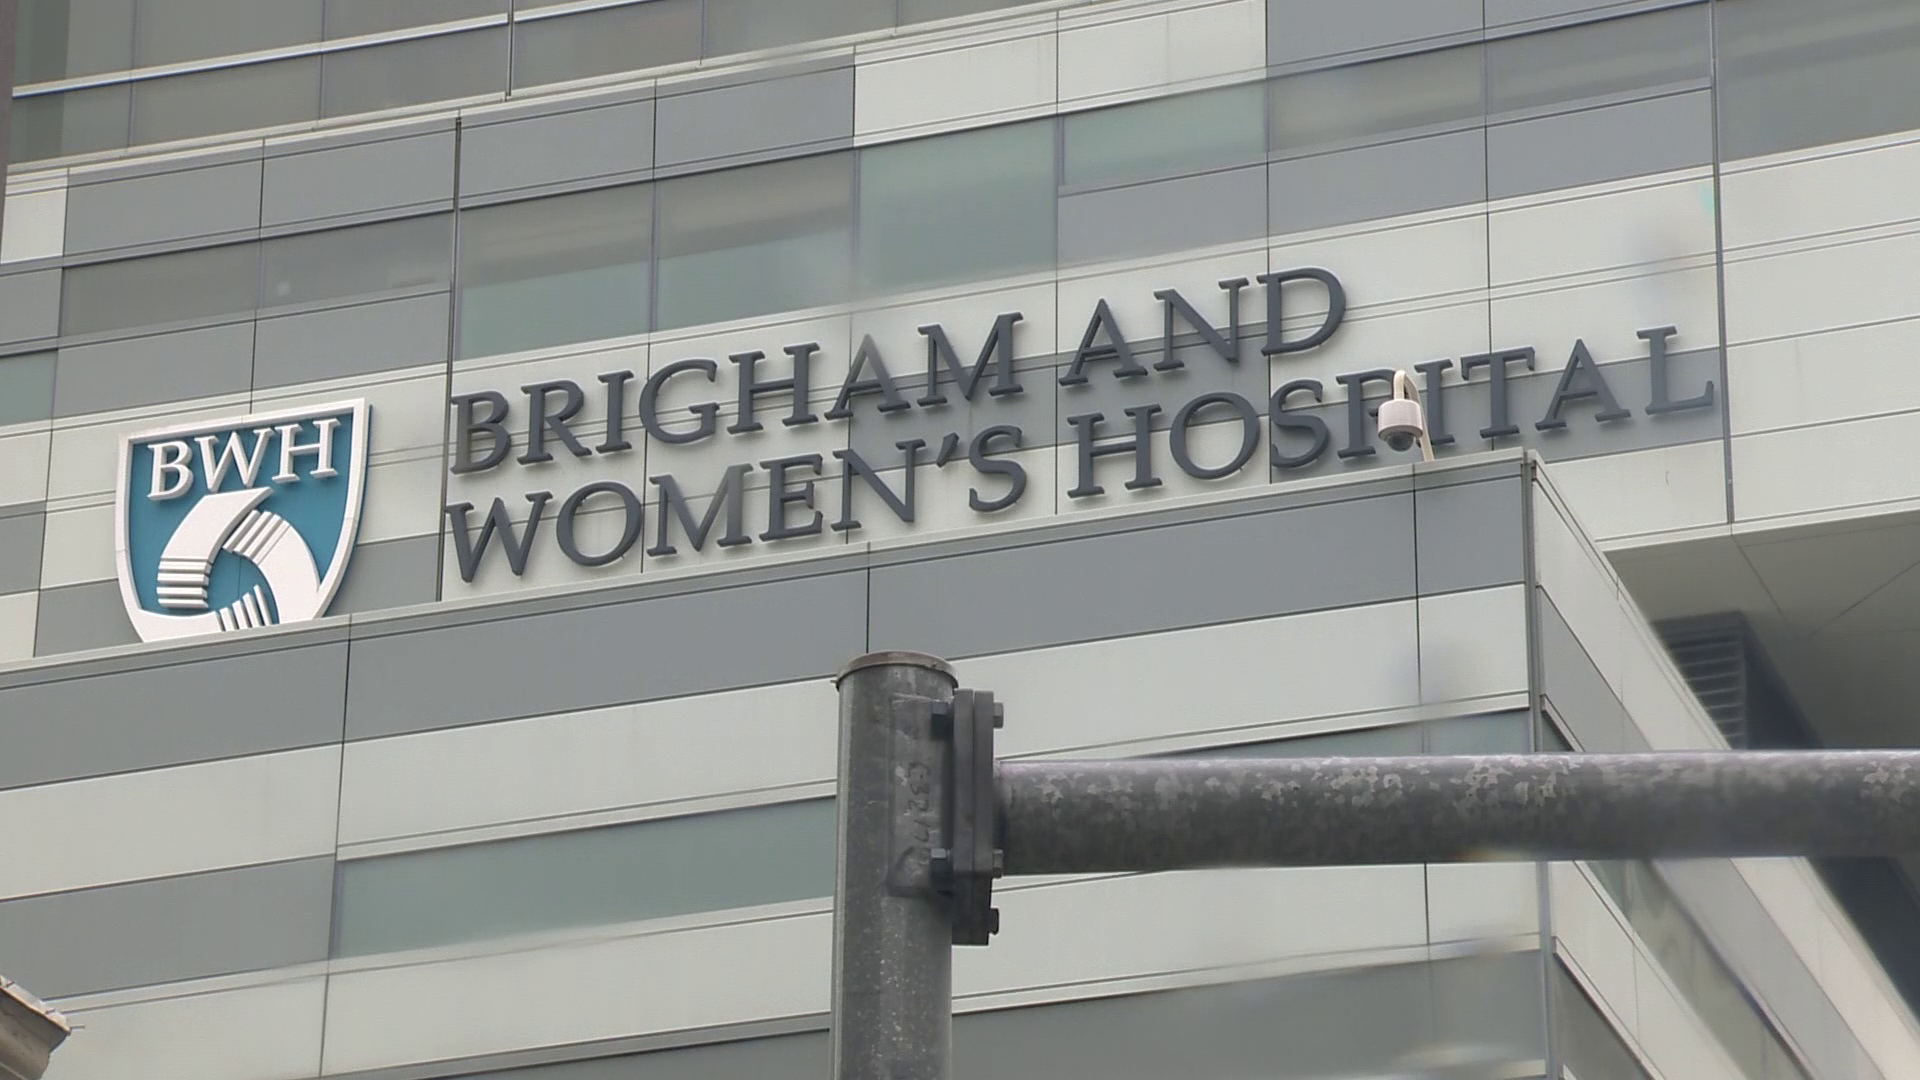 Brigham And Women's Left Out Of Top Hospitals List